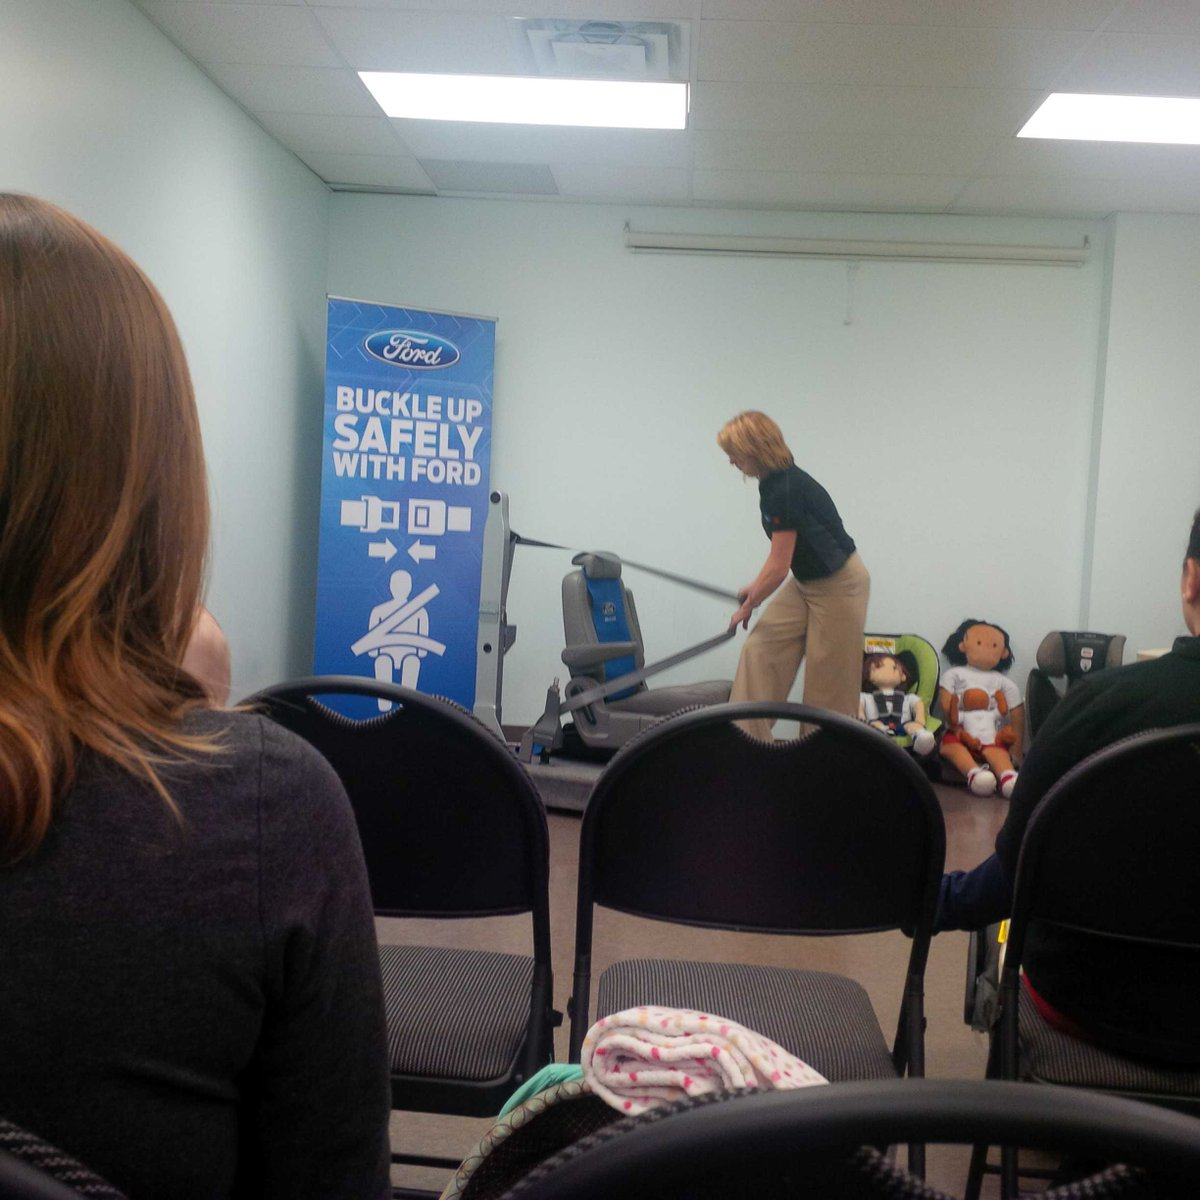 Some great tips for car seat safety and sobering info at #FordSeatSafety event. http://t.co/QOIWosekA1